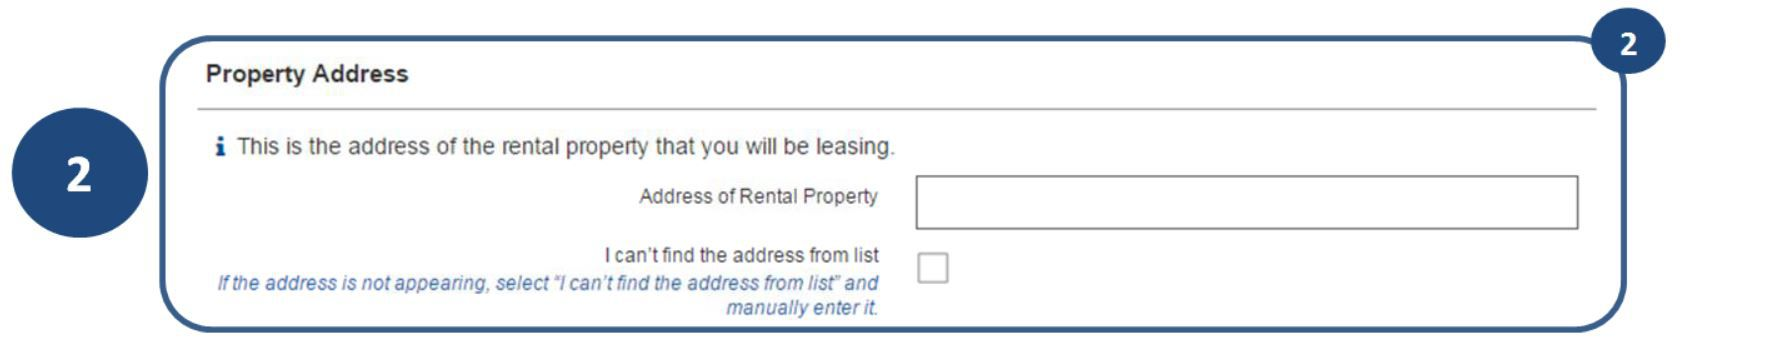 2. Enter the address of the property you will be renting